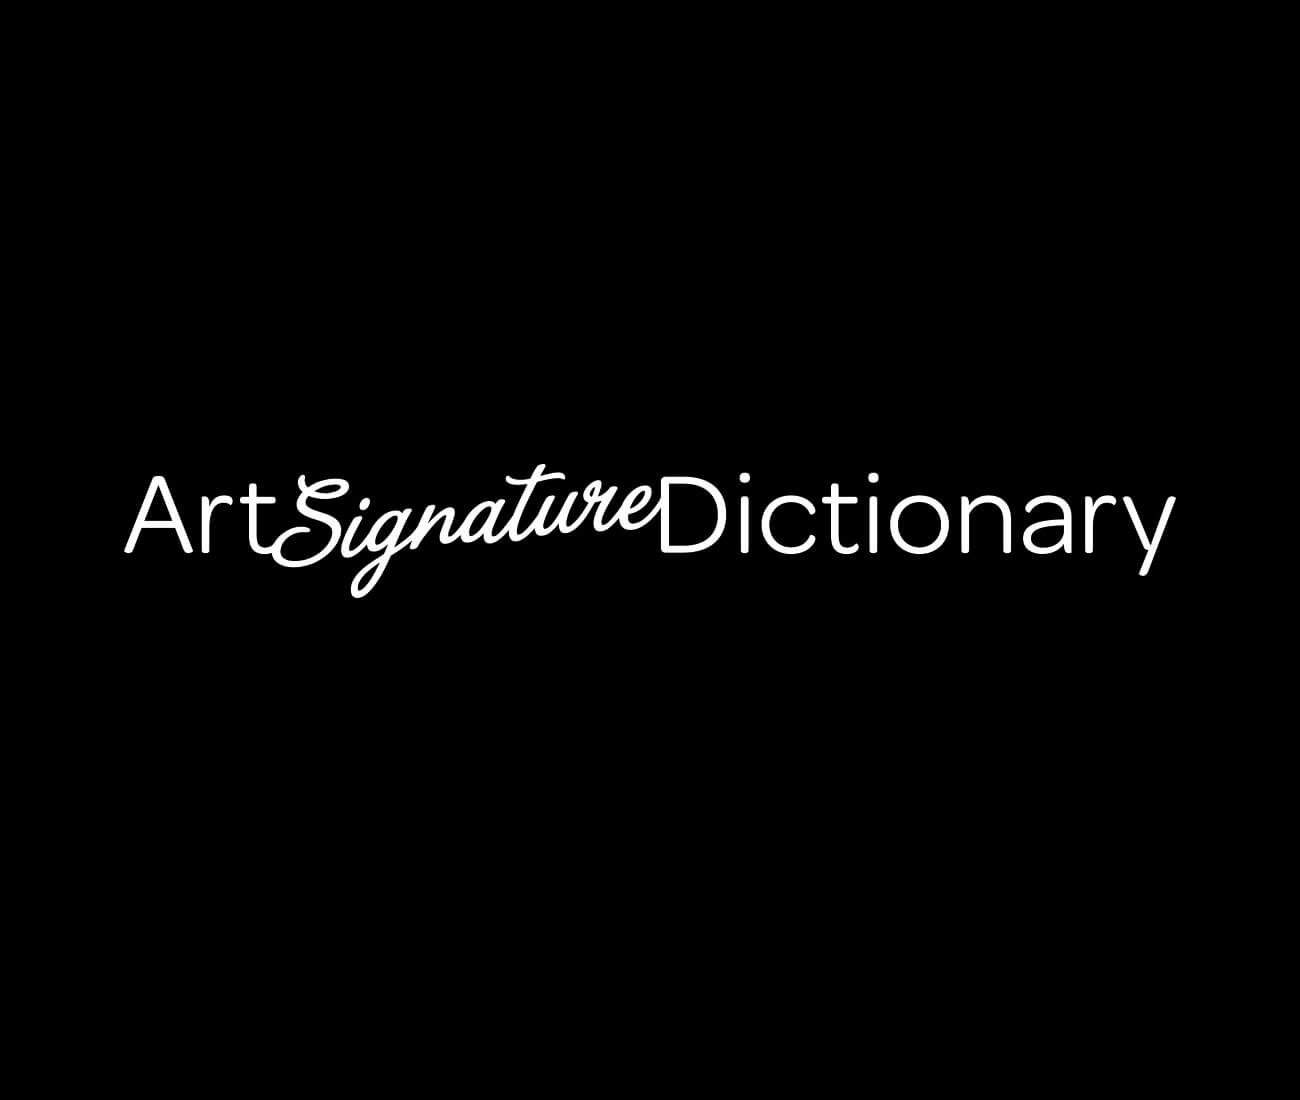 Art Signature Dictionary